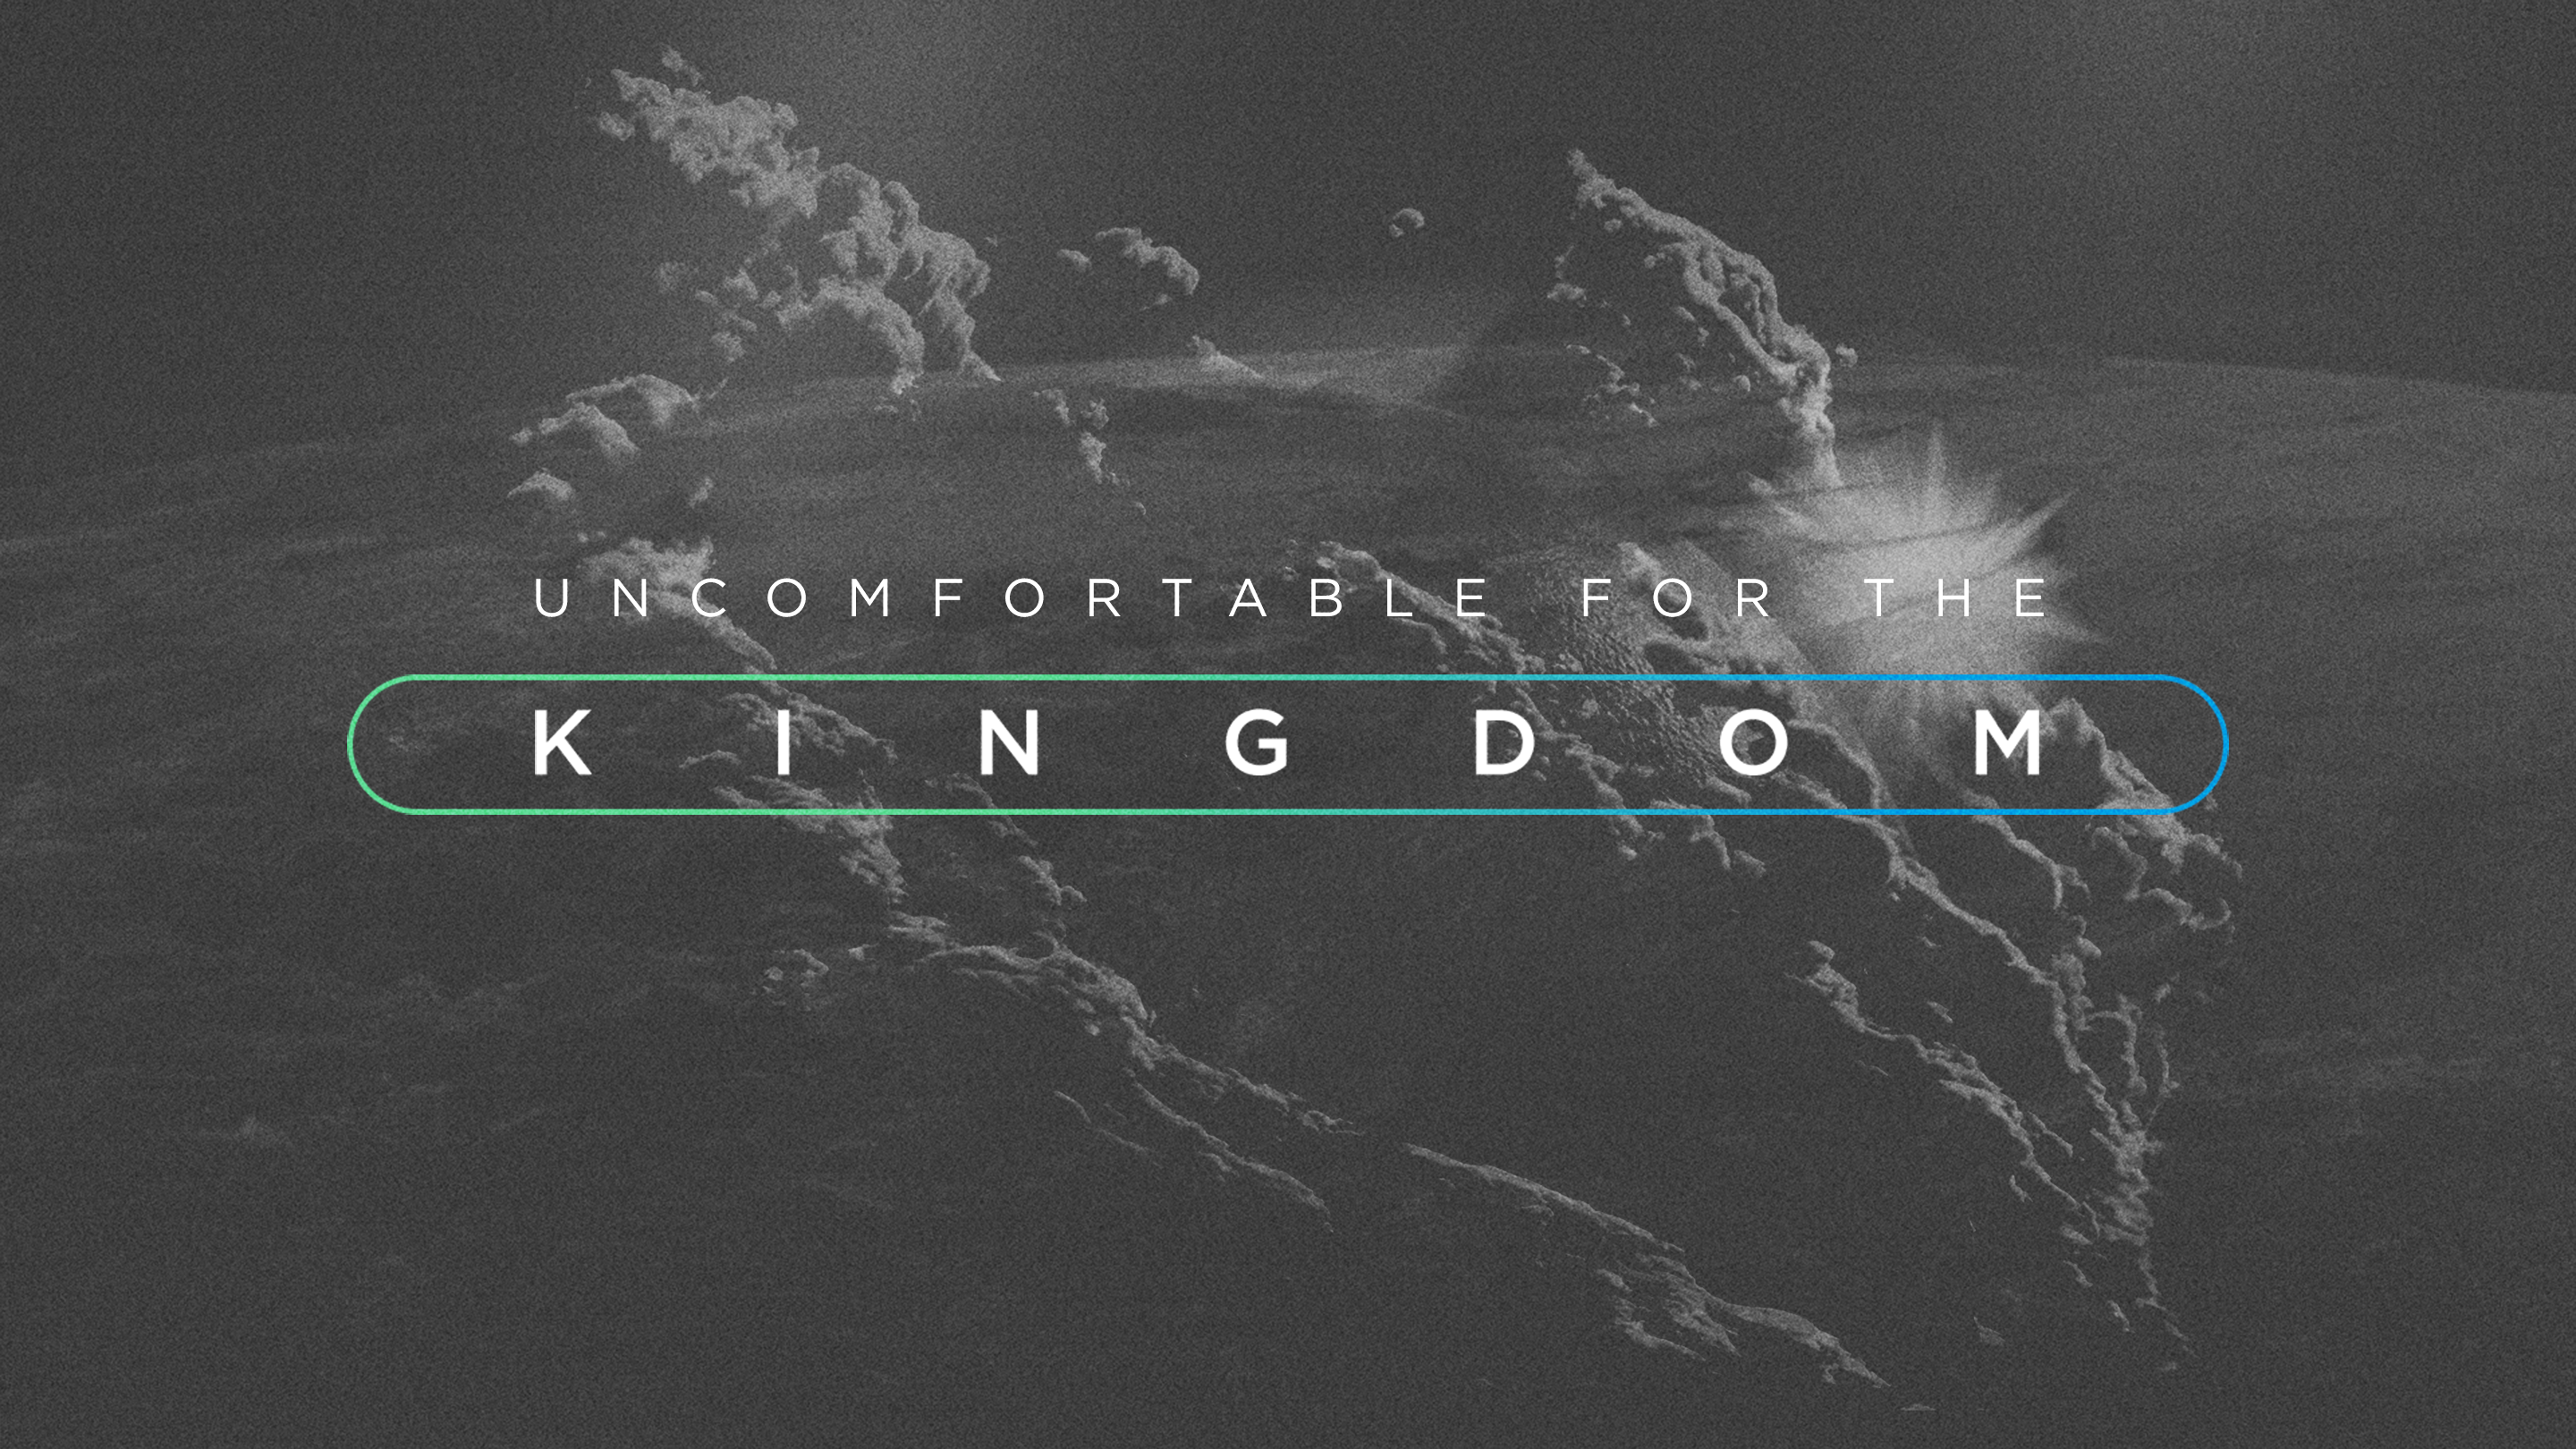 Uncomfortable for the Kingdom